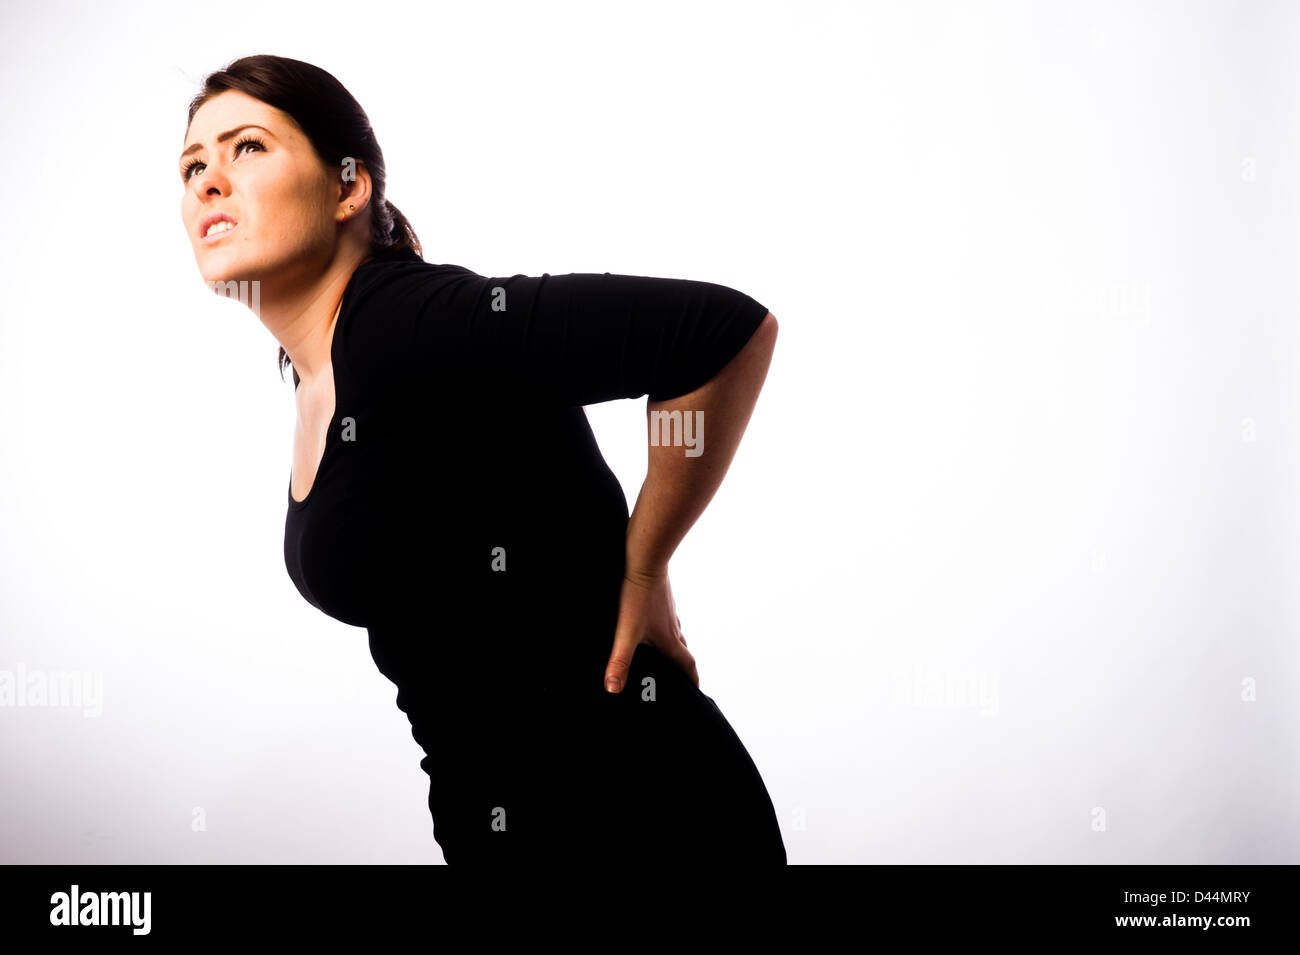 A young woman, brown hair, suffering back pain, UK - Stock Image